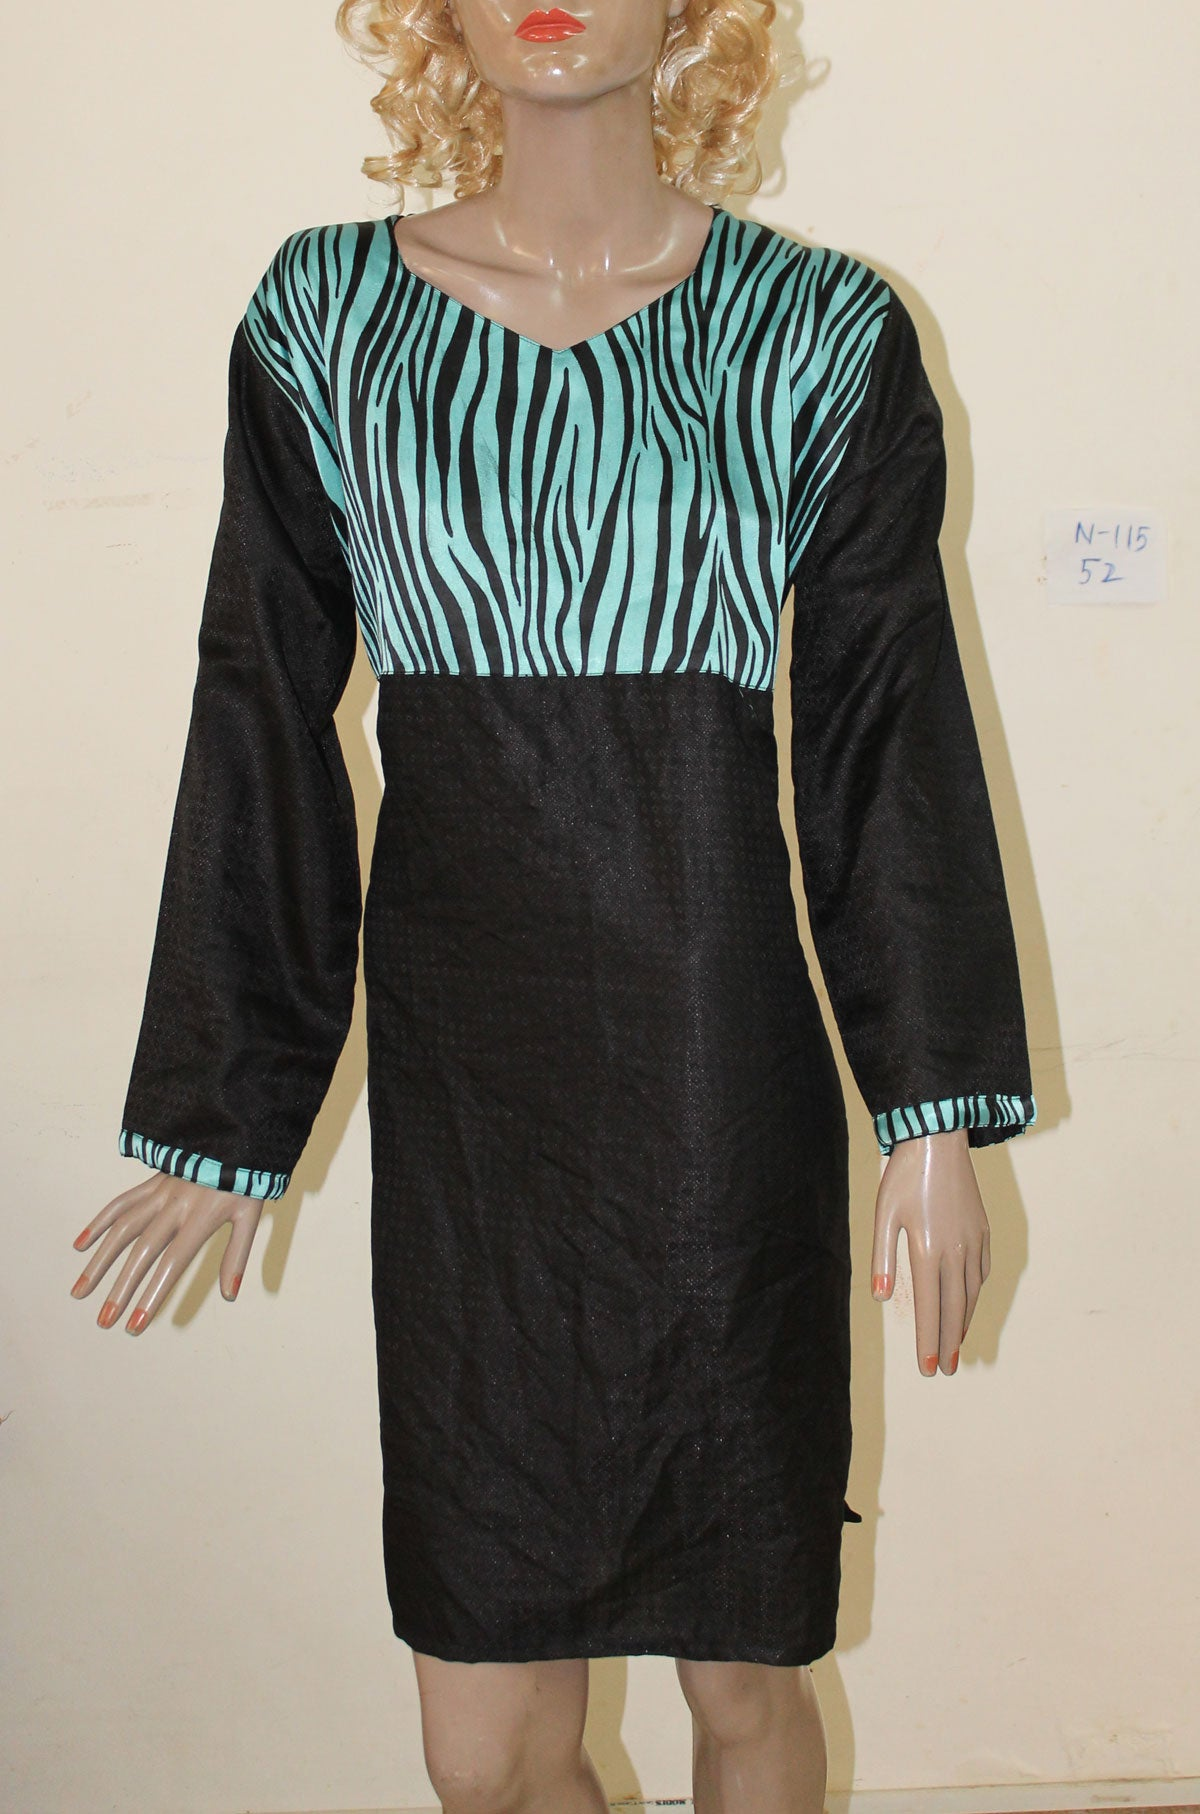 Black N115 Jacquard Indian Clothing Women Kurta Tunic Dress Free Dupatta Plus Size 52